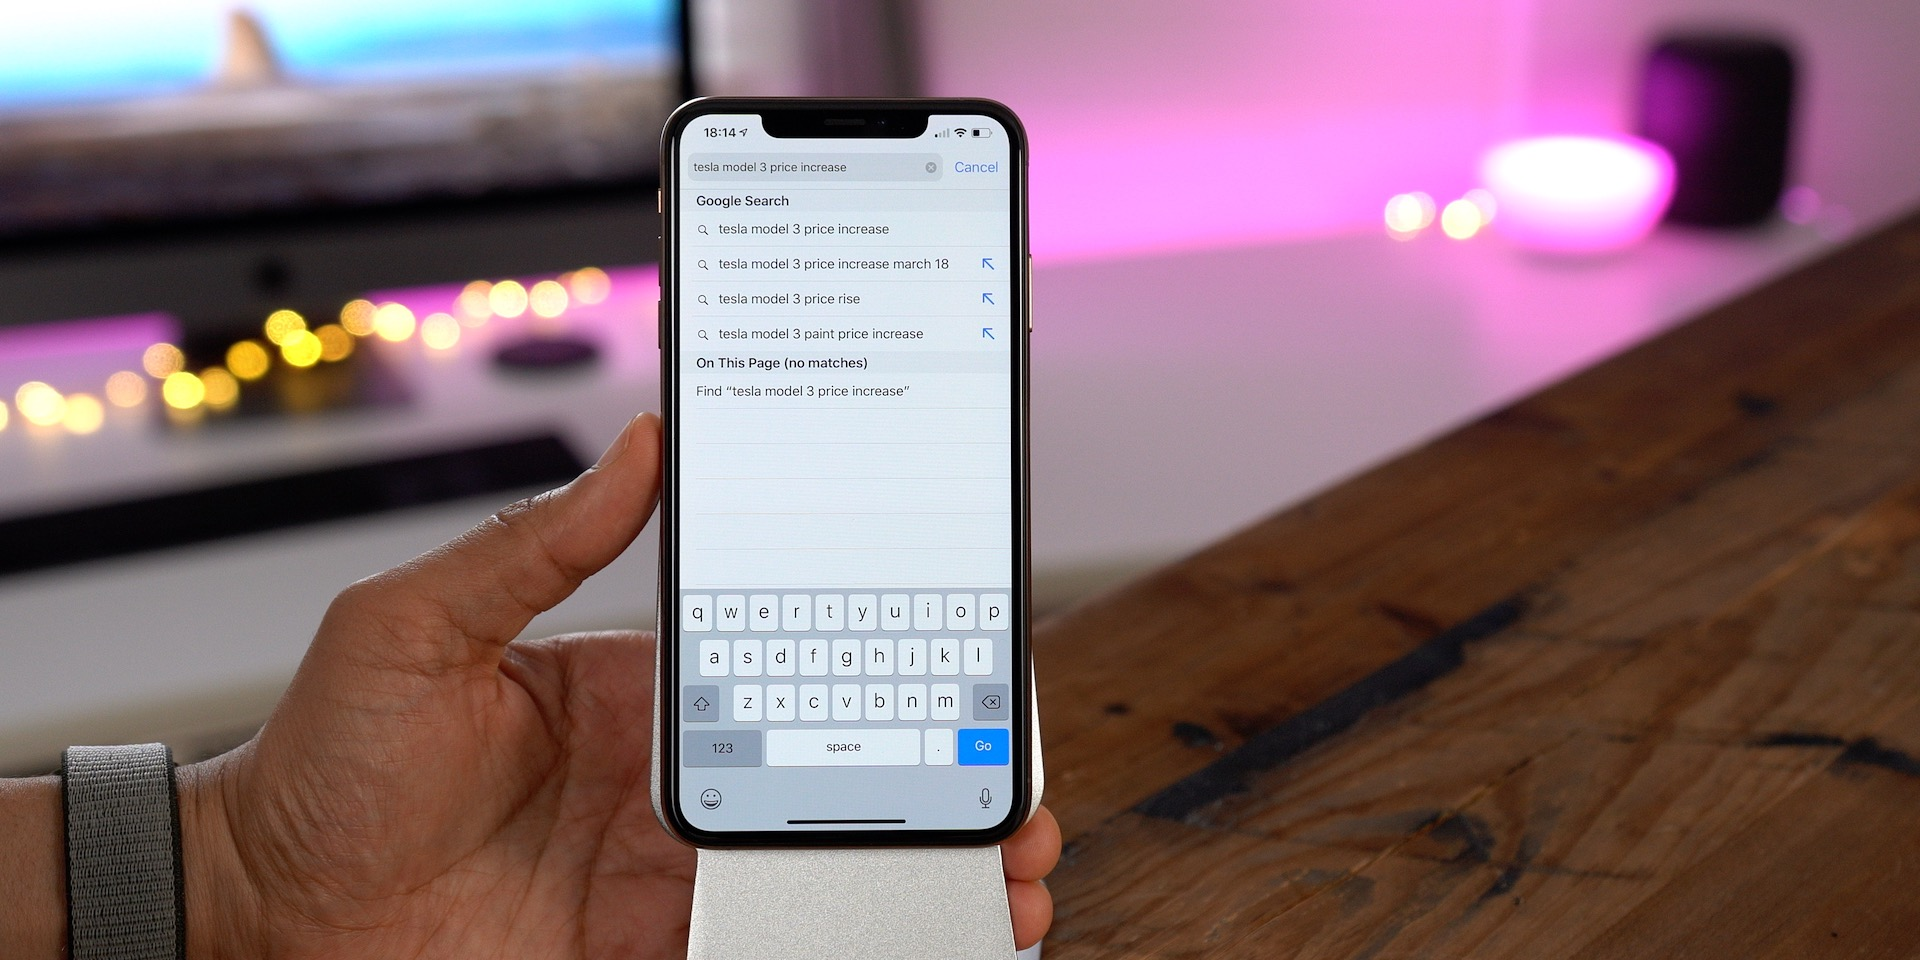 New features in iOS 12 2: Apple News+, new Animoji, new